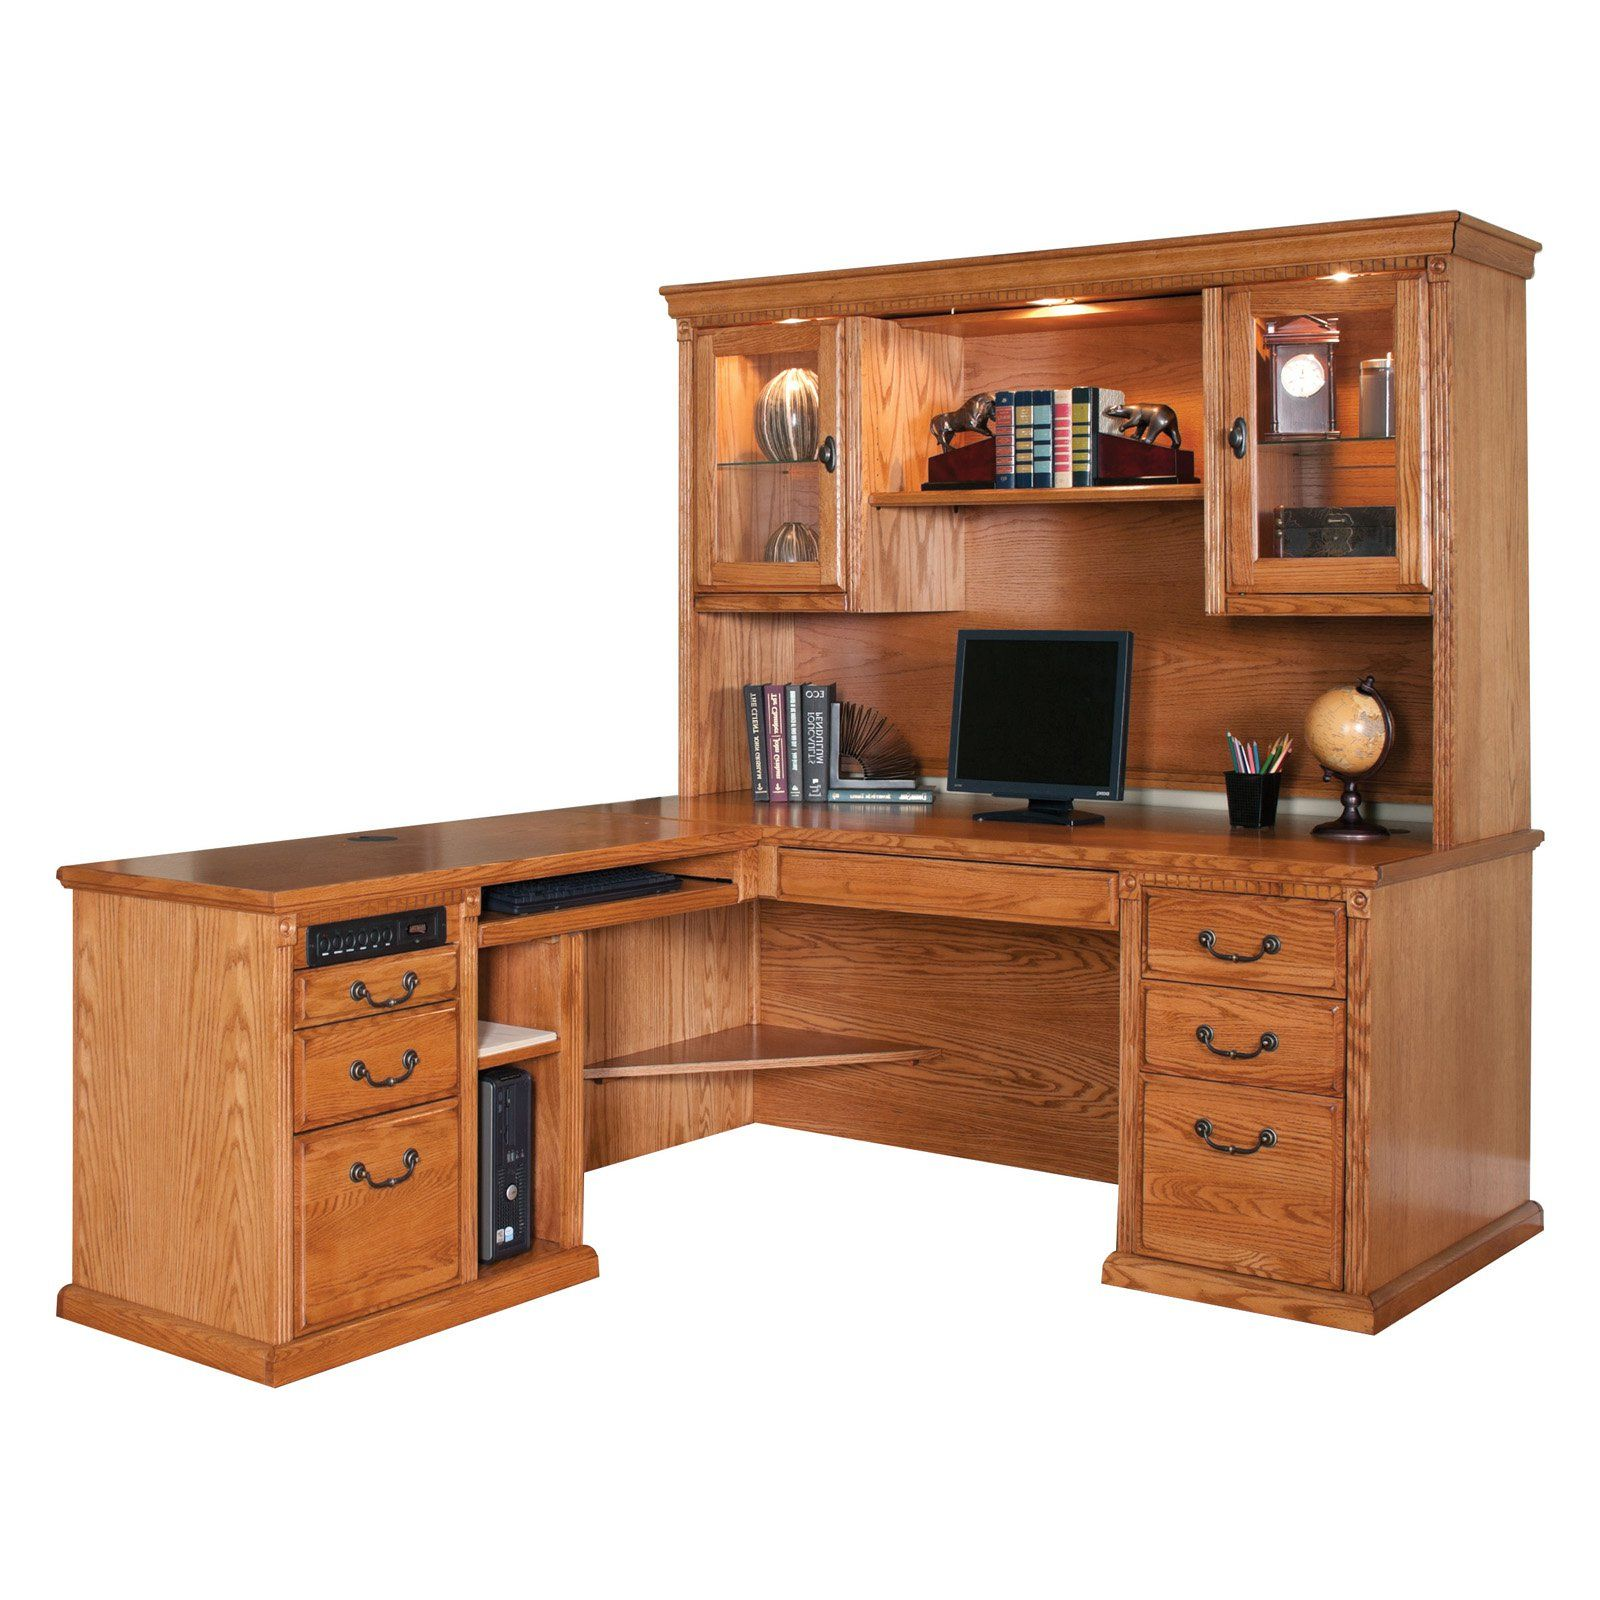 Contemporary Sauder L Shaped Desk With Hutch Huntington Oxford Left Handed Inside Inspiration Decorating